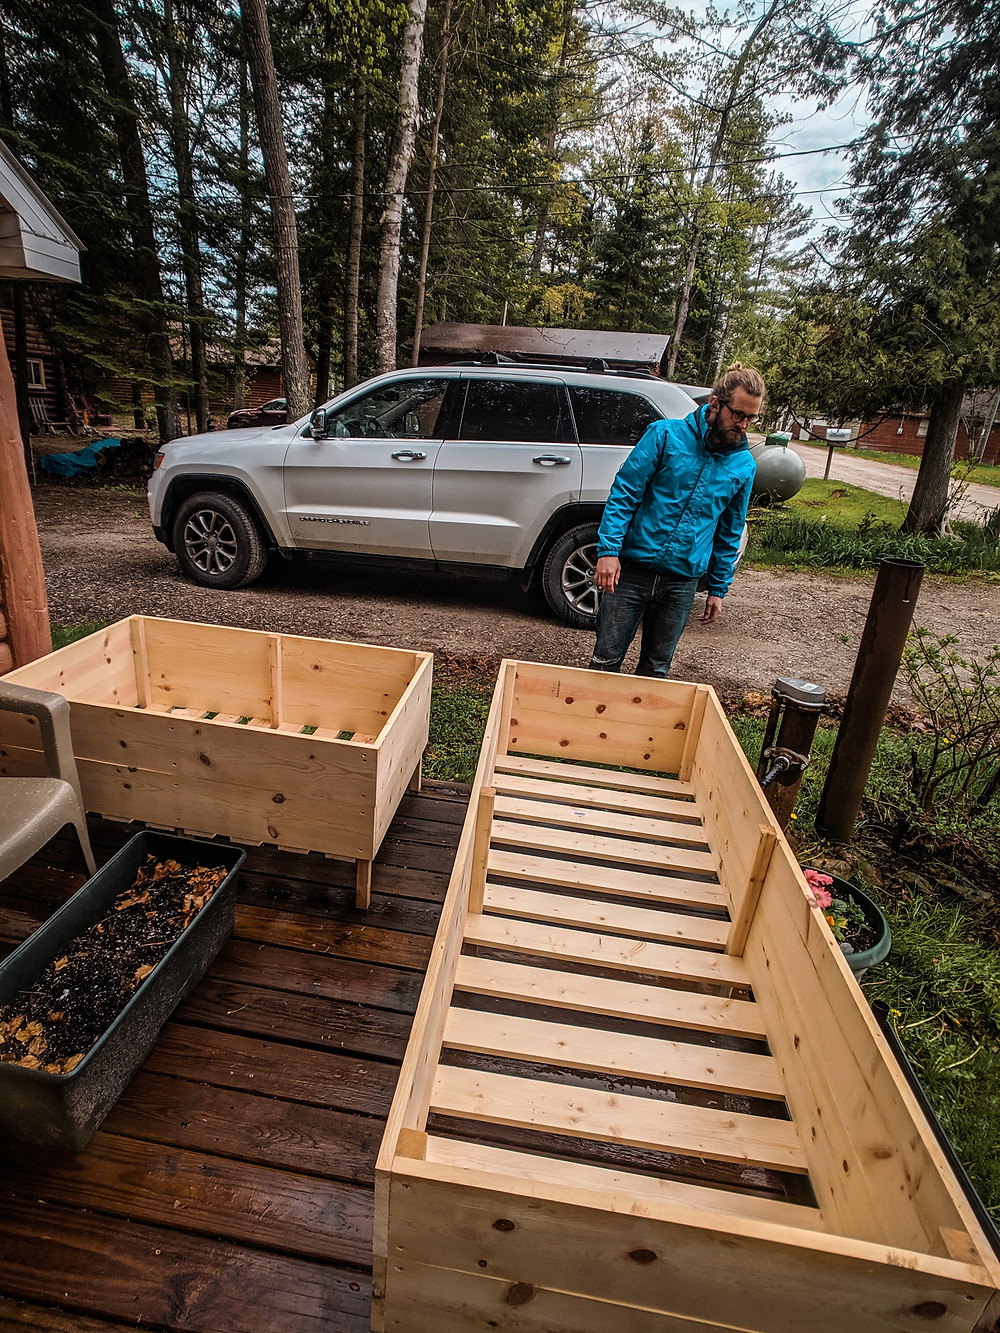 Deciding where to put our DIY raised garden beds made by Steph Castelein at Each Day Slow in Northern Michigan.